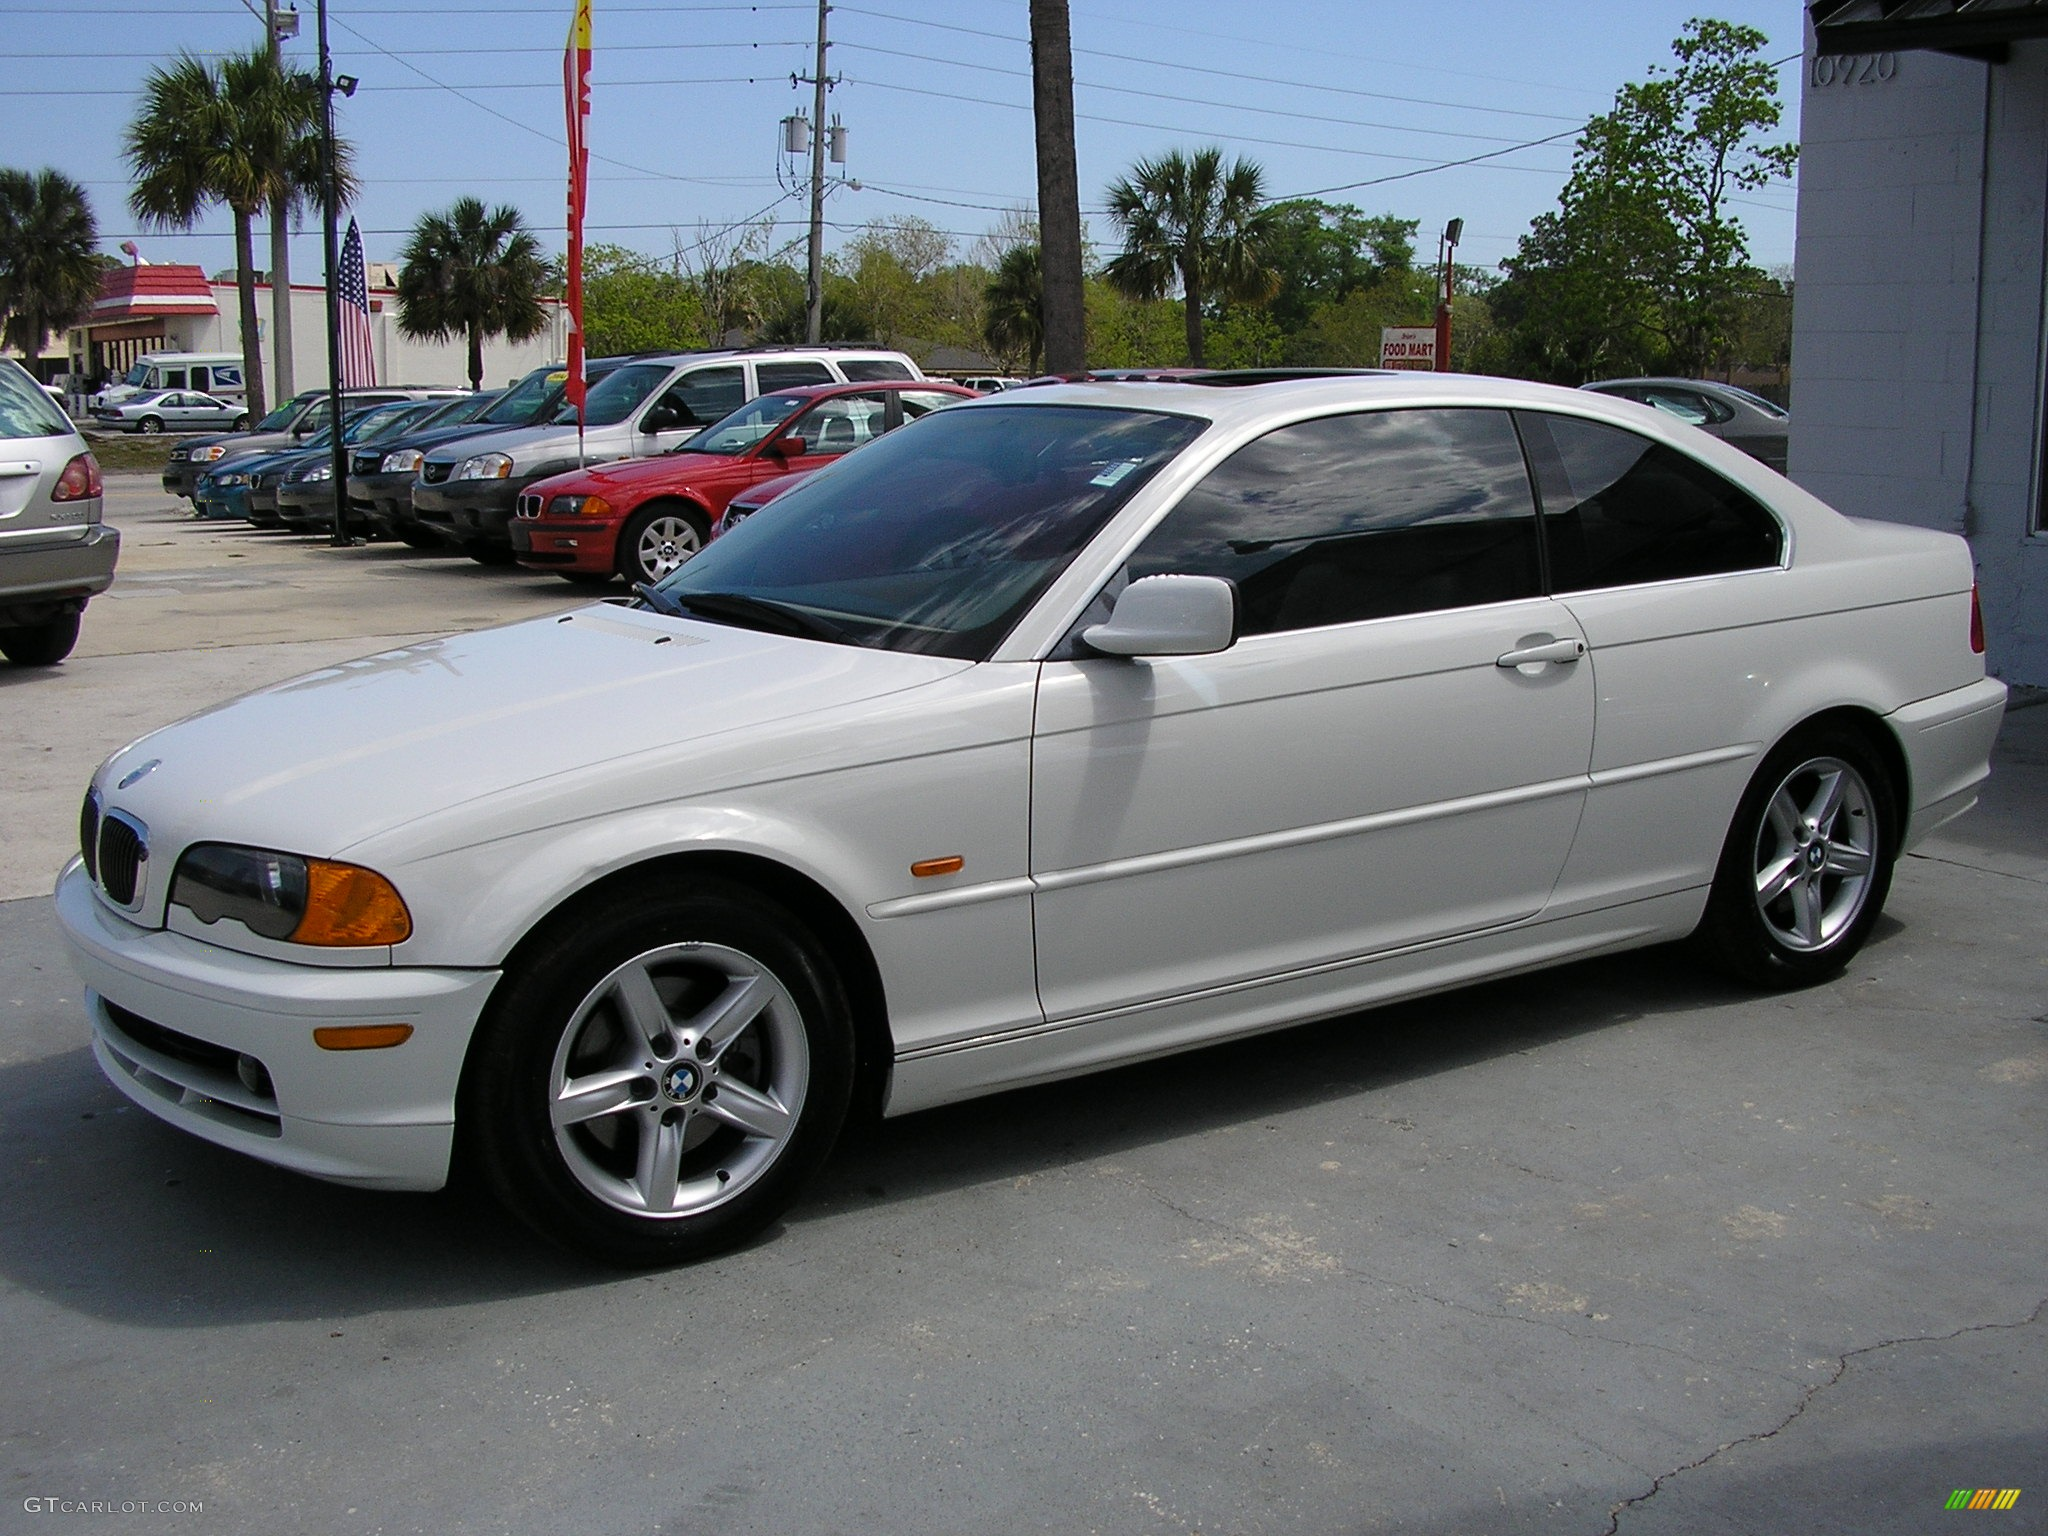 2001 alpine white bmw 3 series 325i coupe #165682 | gtcarlot